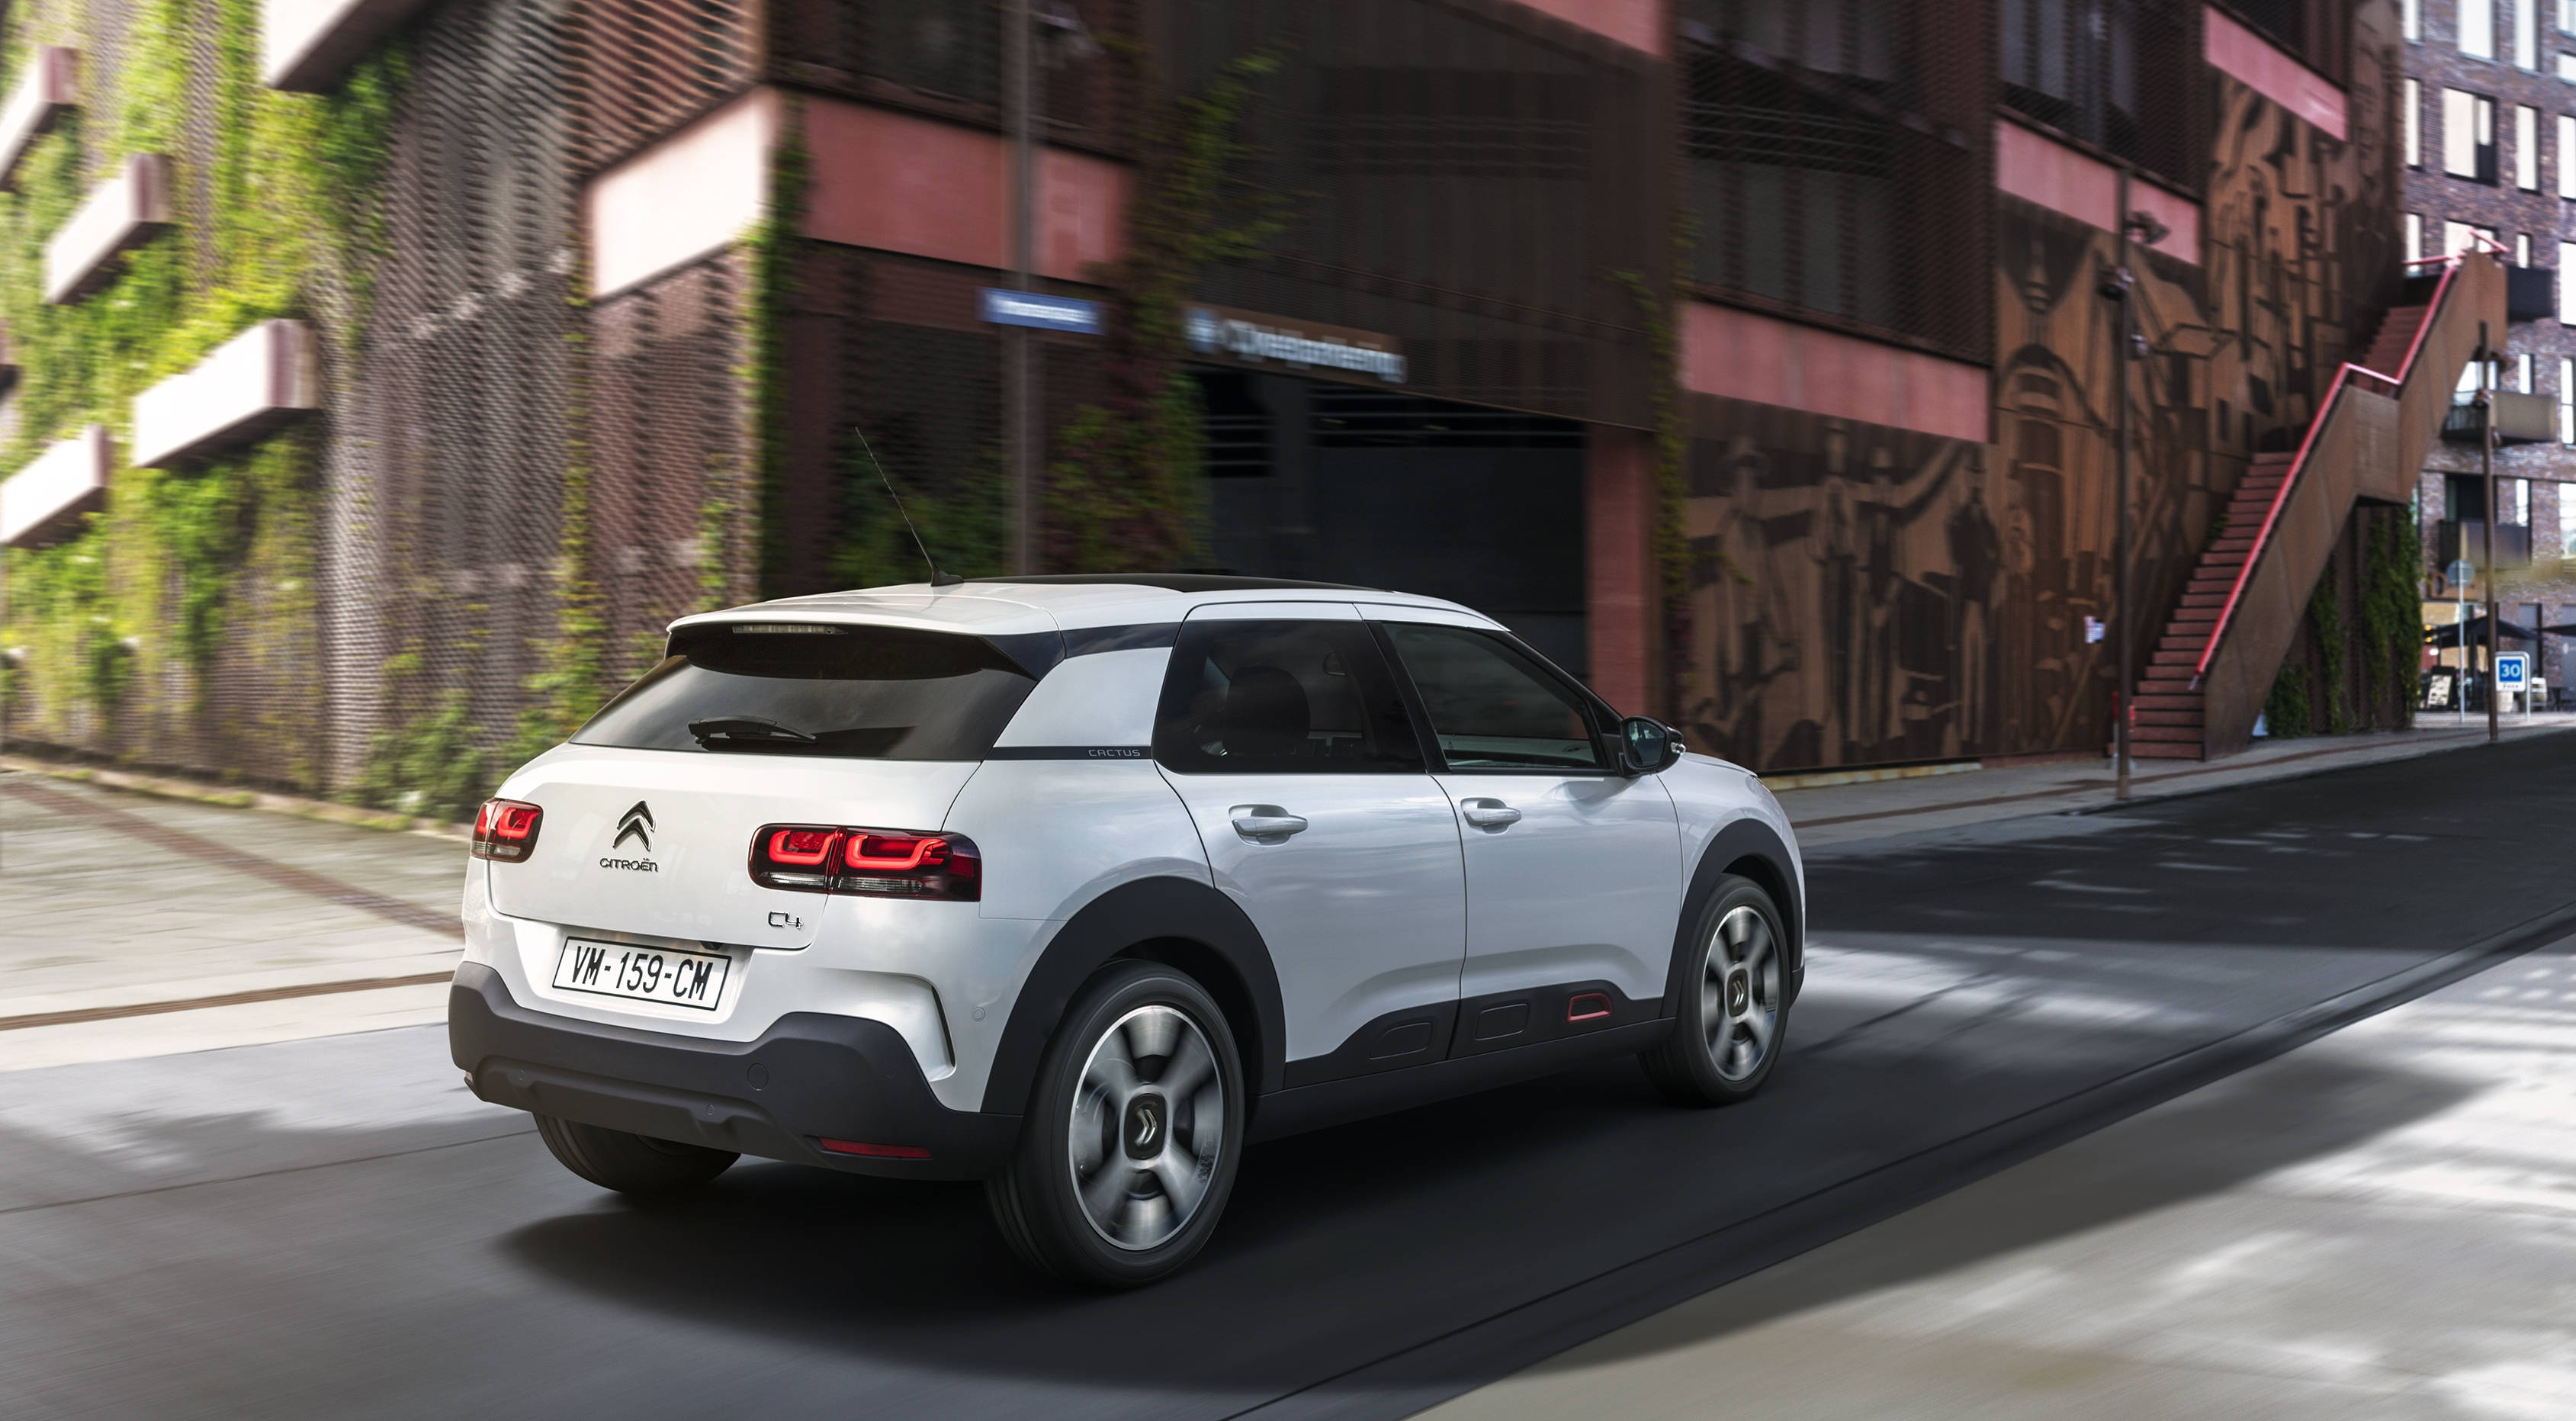 pr sentation vid o citroen c4 cactus restyl e 2018. Black Bedroom Furniture Sets. Home Design Ideas